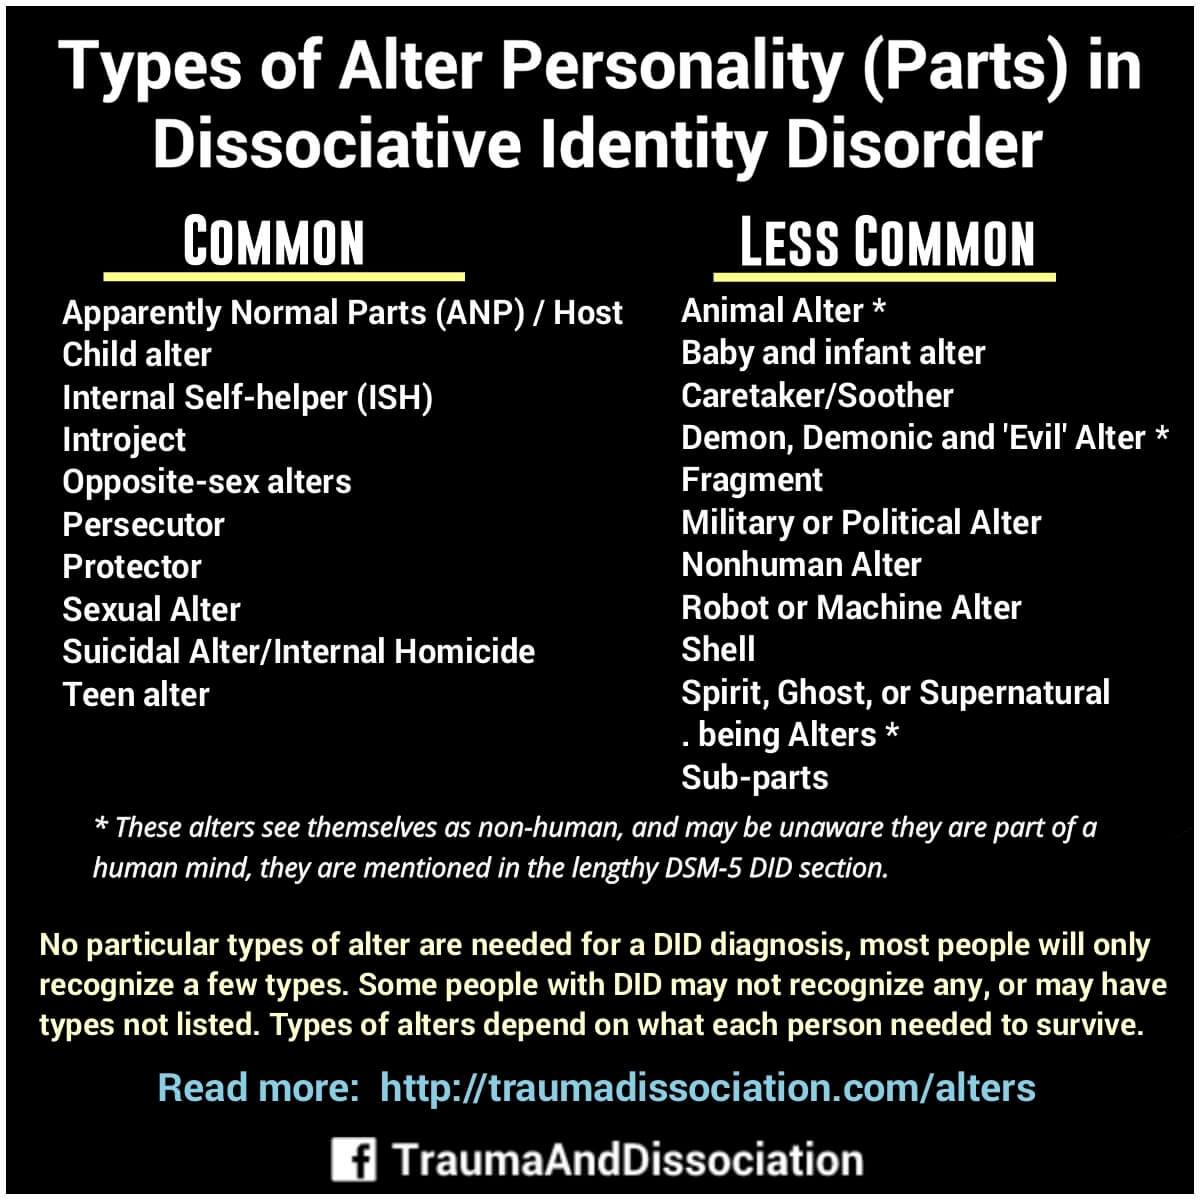 Types of alters in #dissociativeidentitydisorder Common: Apparently Normal Parts (ANP) / Host,Child alter,Internal Self-helper (ISH),Introjects,Opposite-sex alters,Persecutor,Protector,Sexual Alter,Suicidal Alter or Internal Homicide,Teen alter. Less Common: Animal Alter,Baby and infant alter, Caretaker/Soother, Demon, Demonic and 'Evil' Alter, Fragment, Military or Political Alter, Nonhuman Alter, Robot or Machine Alter, Shell, Spirit, Ghost, or Supernatural being Alters,Sub-parts. No particular types of alter are needed for a DID diagnosis, most people will only recognize a few types. Some people with DID may not recognize any, or may have types not listed. Types of alters depend on what each person needed to survive.